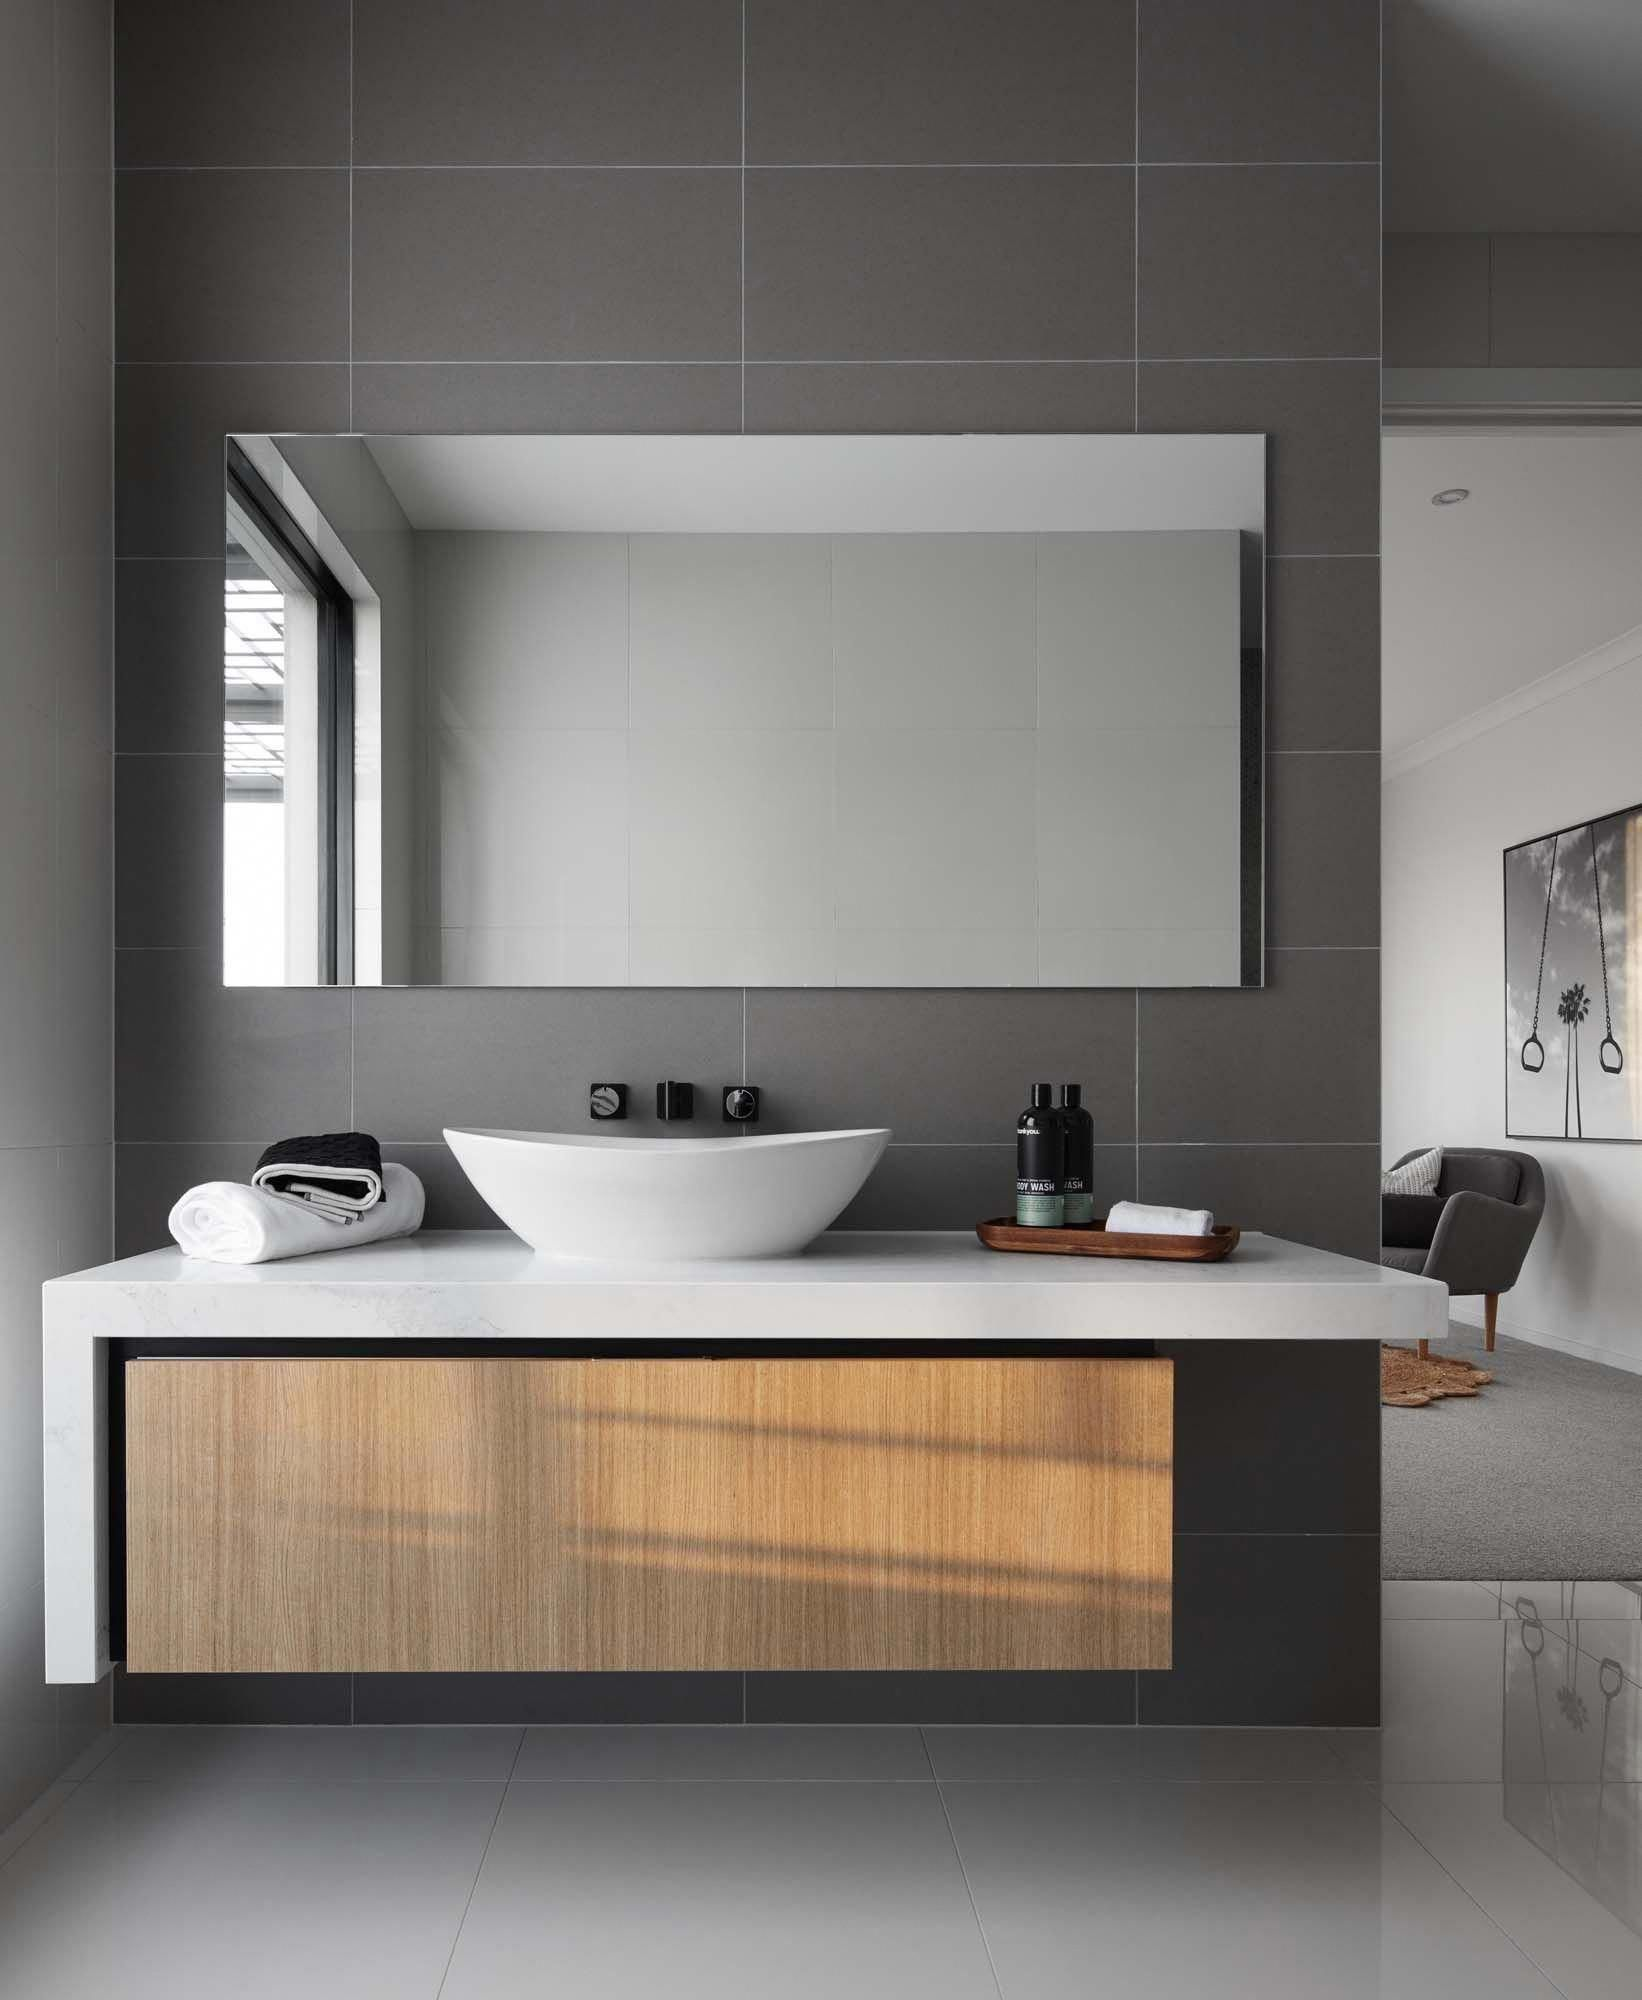 Read This Article Today Which Discusses Greige Bathroom Small Bathroom Remodel Bathroom Vanity Decor Bathrooms Remodel [ jpg ]